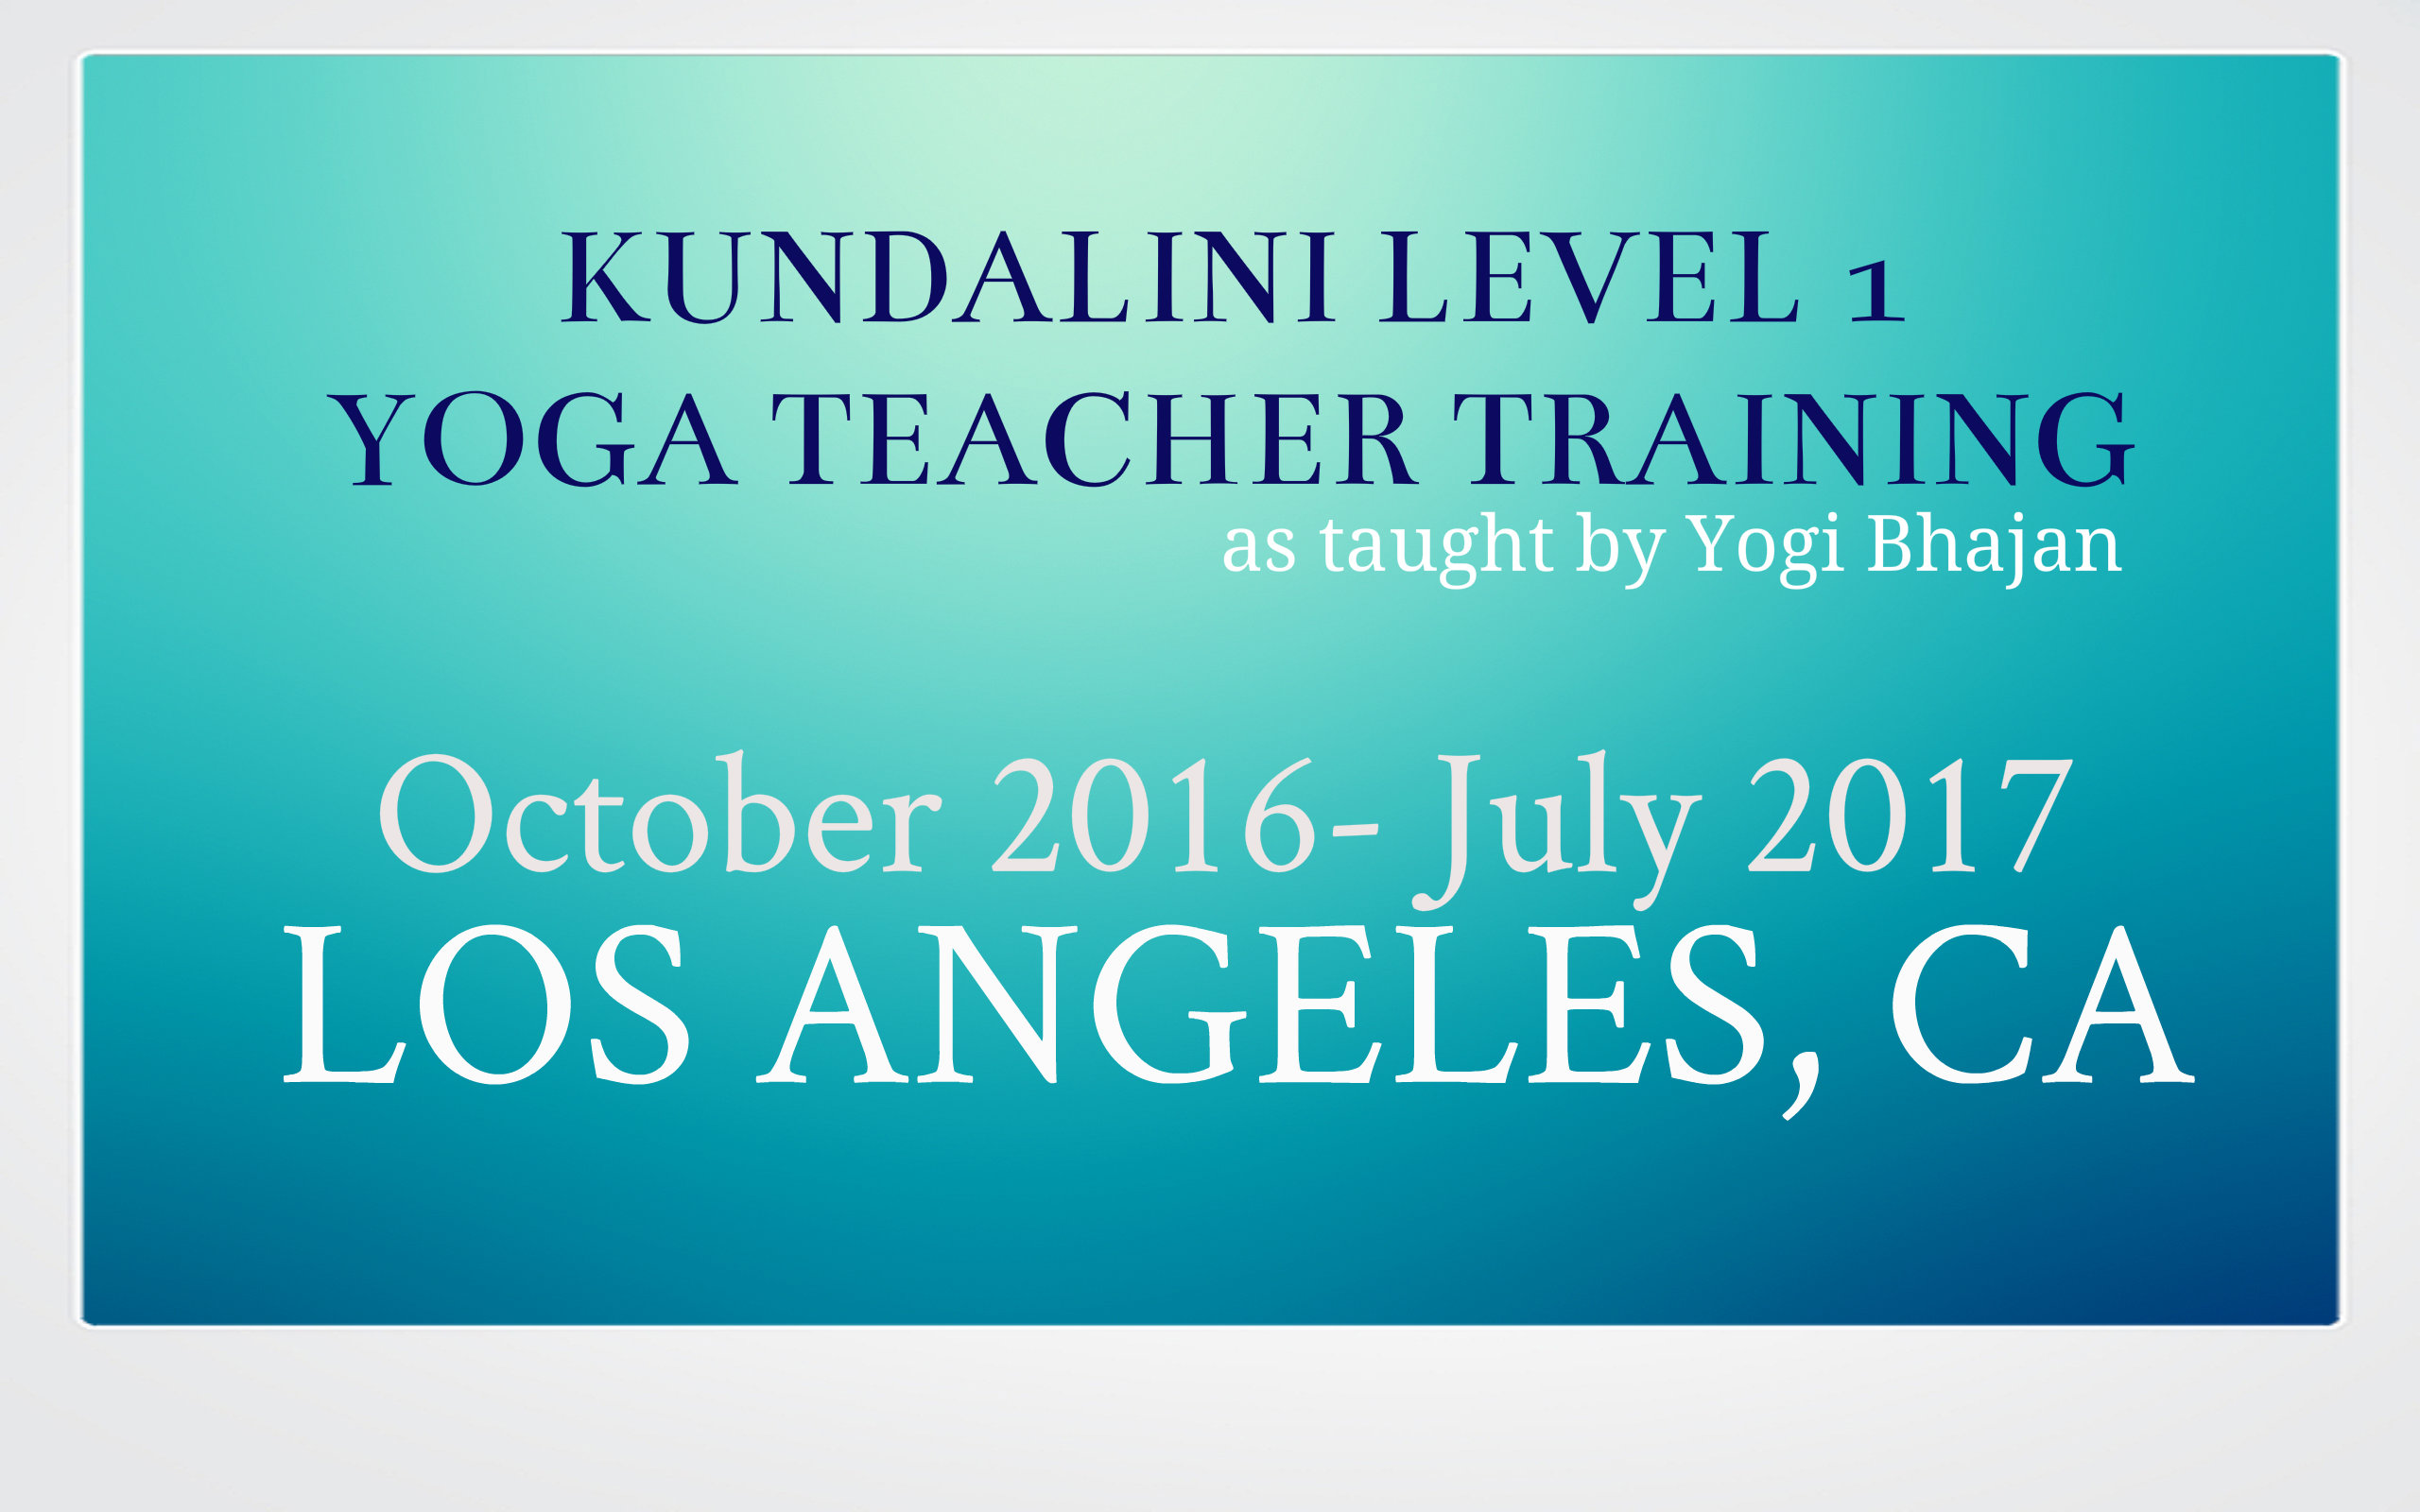 Level 1 Kundalini Teacher Training 2016-2017: Los Angeles